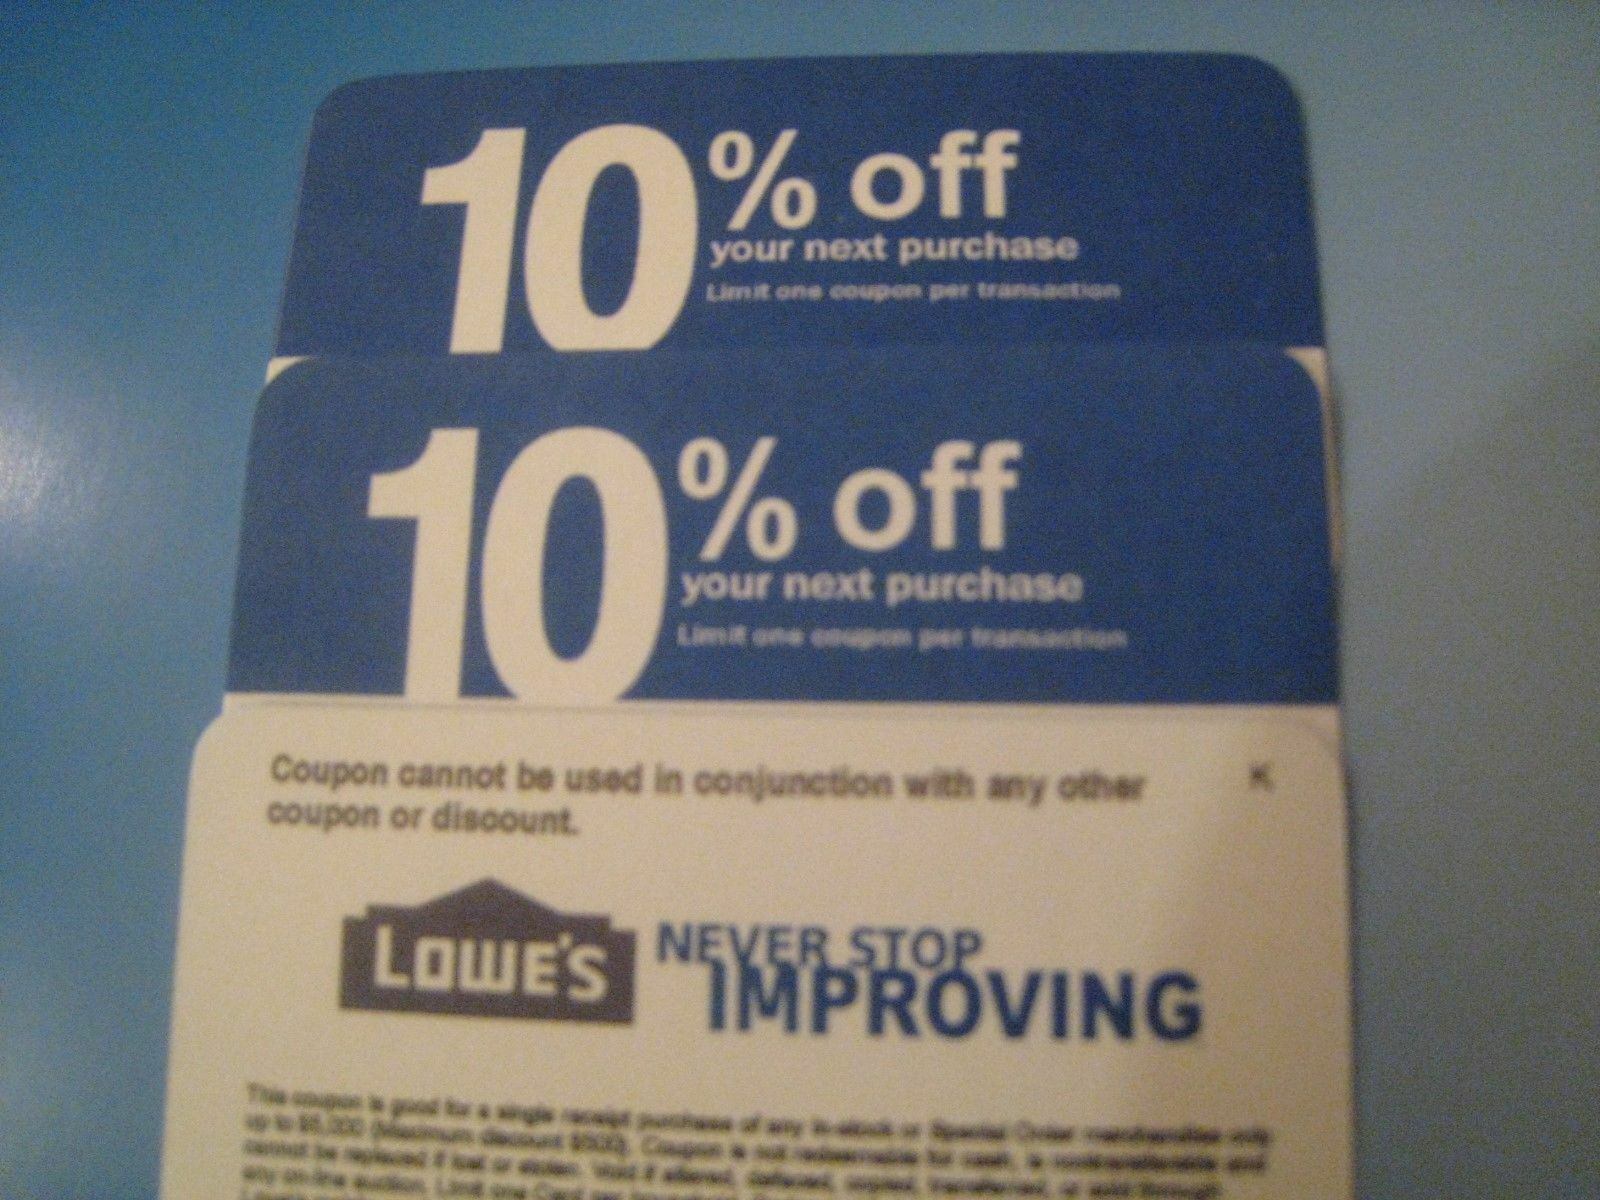 5X Home Depot 10 OFF Exp 9/15/21 Lowes COMPETITOR Coupon NOT FOR LOWE S  - $4.99